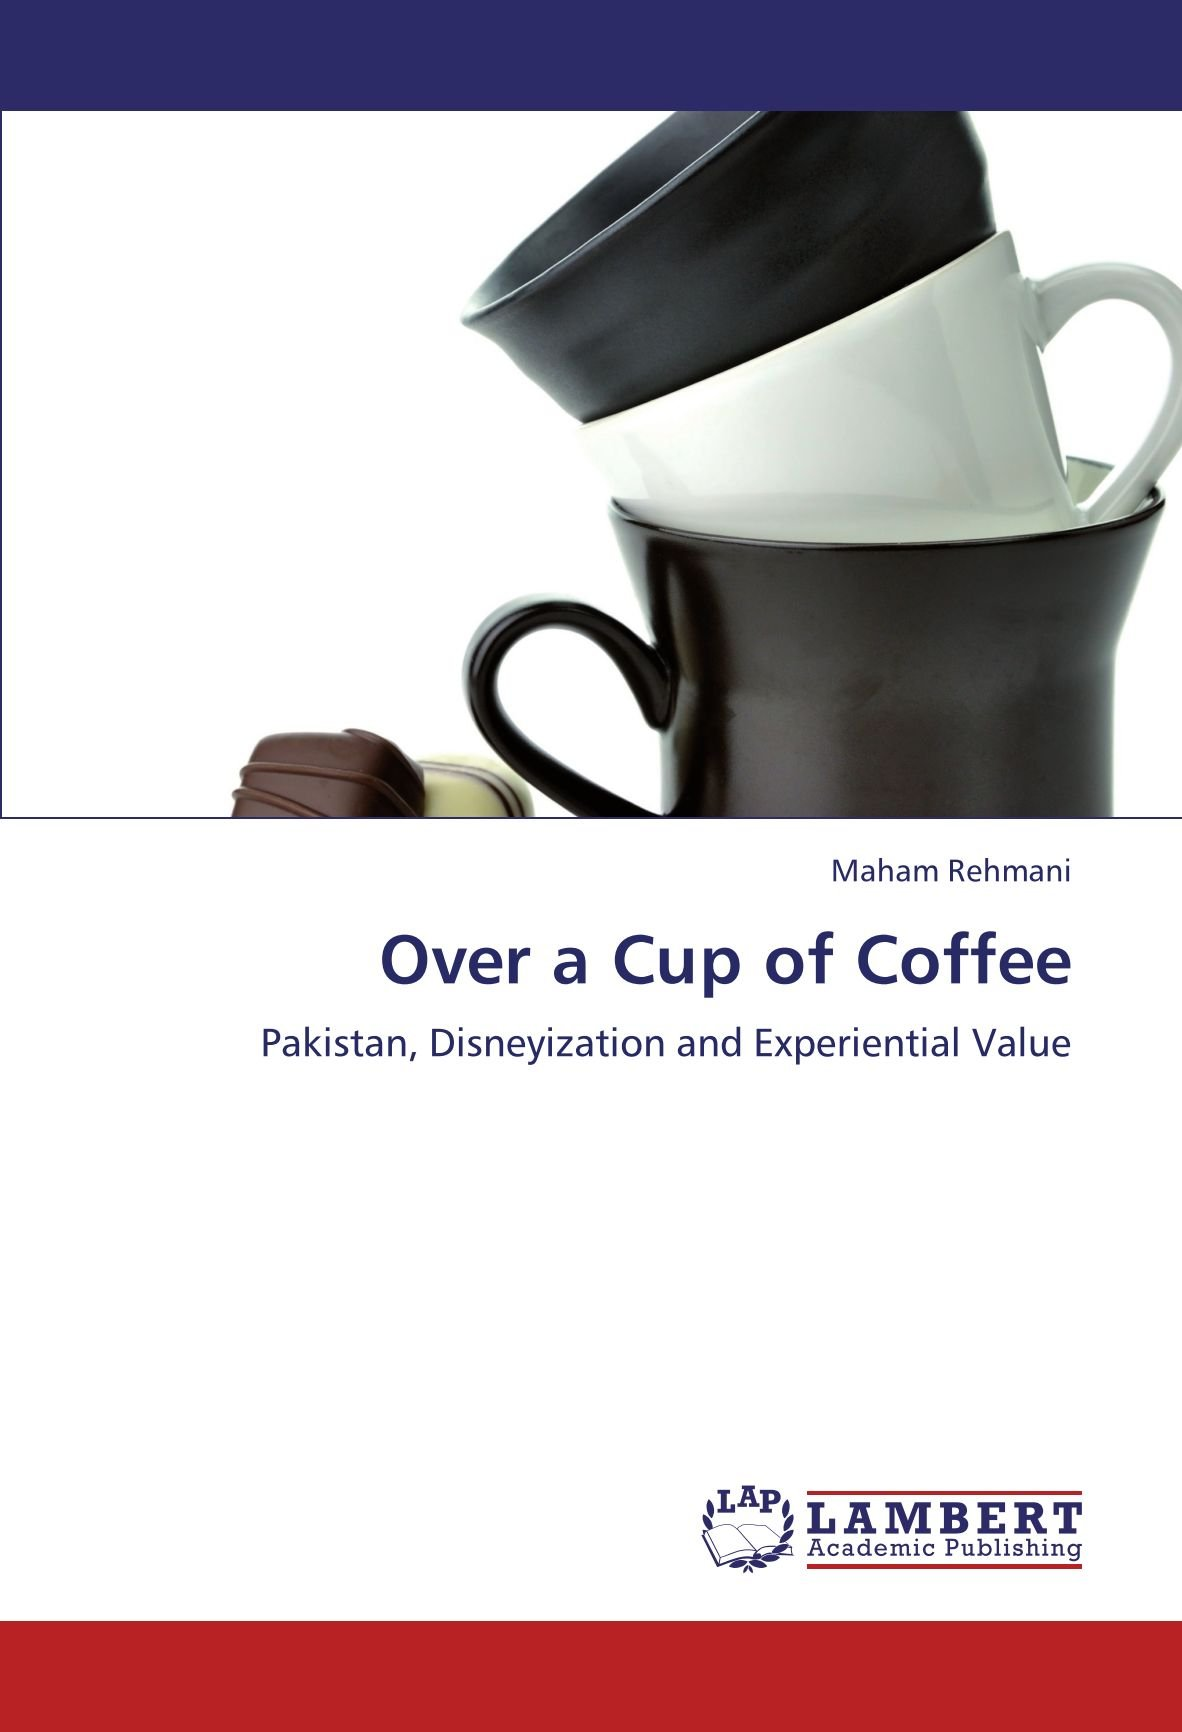 Over a Cup of Coffee: Pakistan, Disneyization and Experiential Value pdf